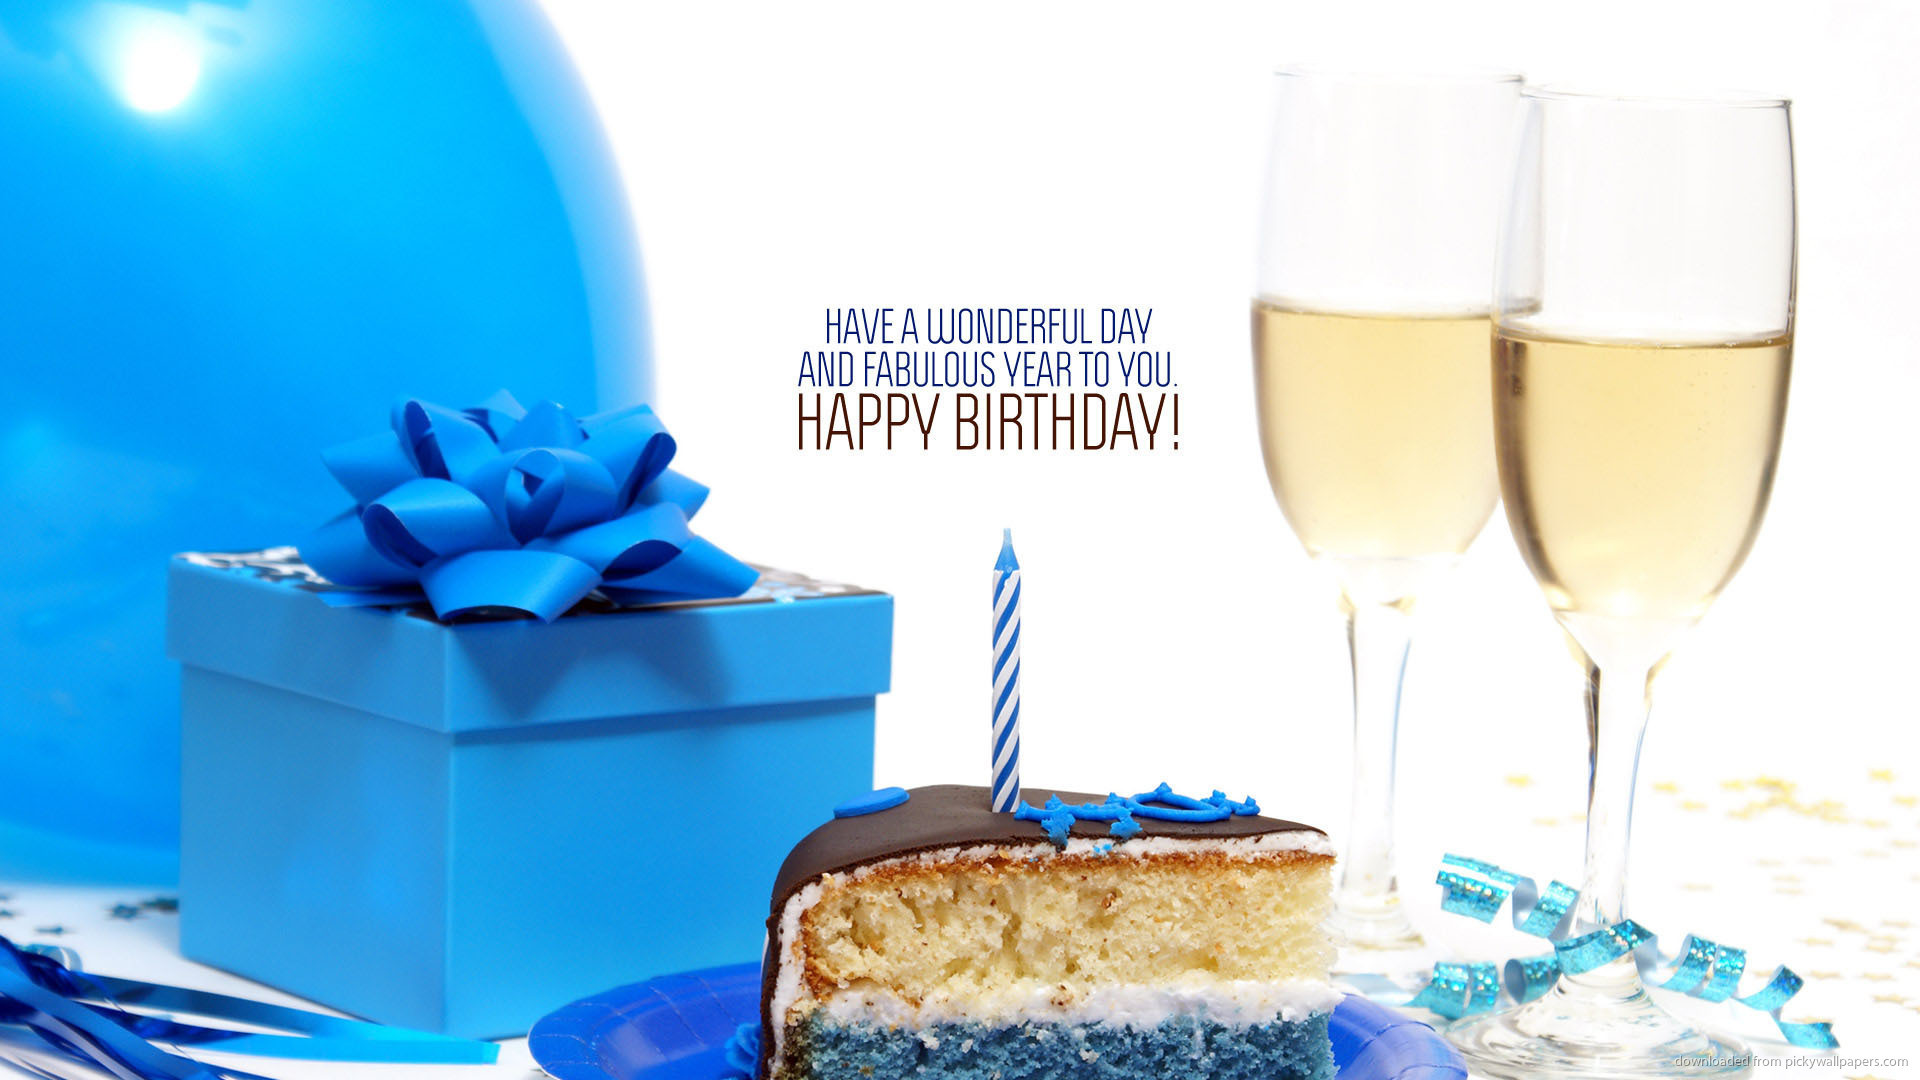 Happy Birthday Wishes On Cake Online